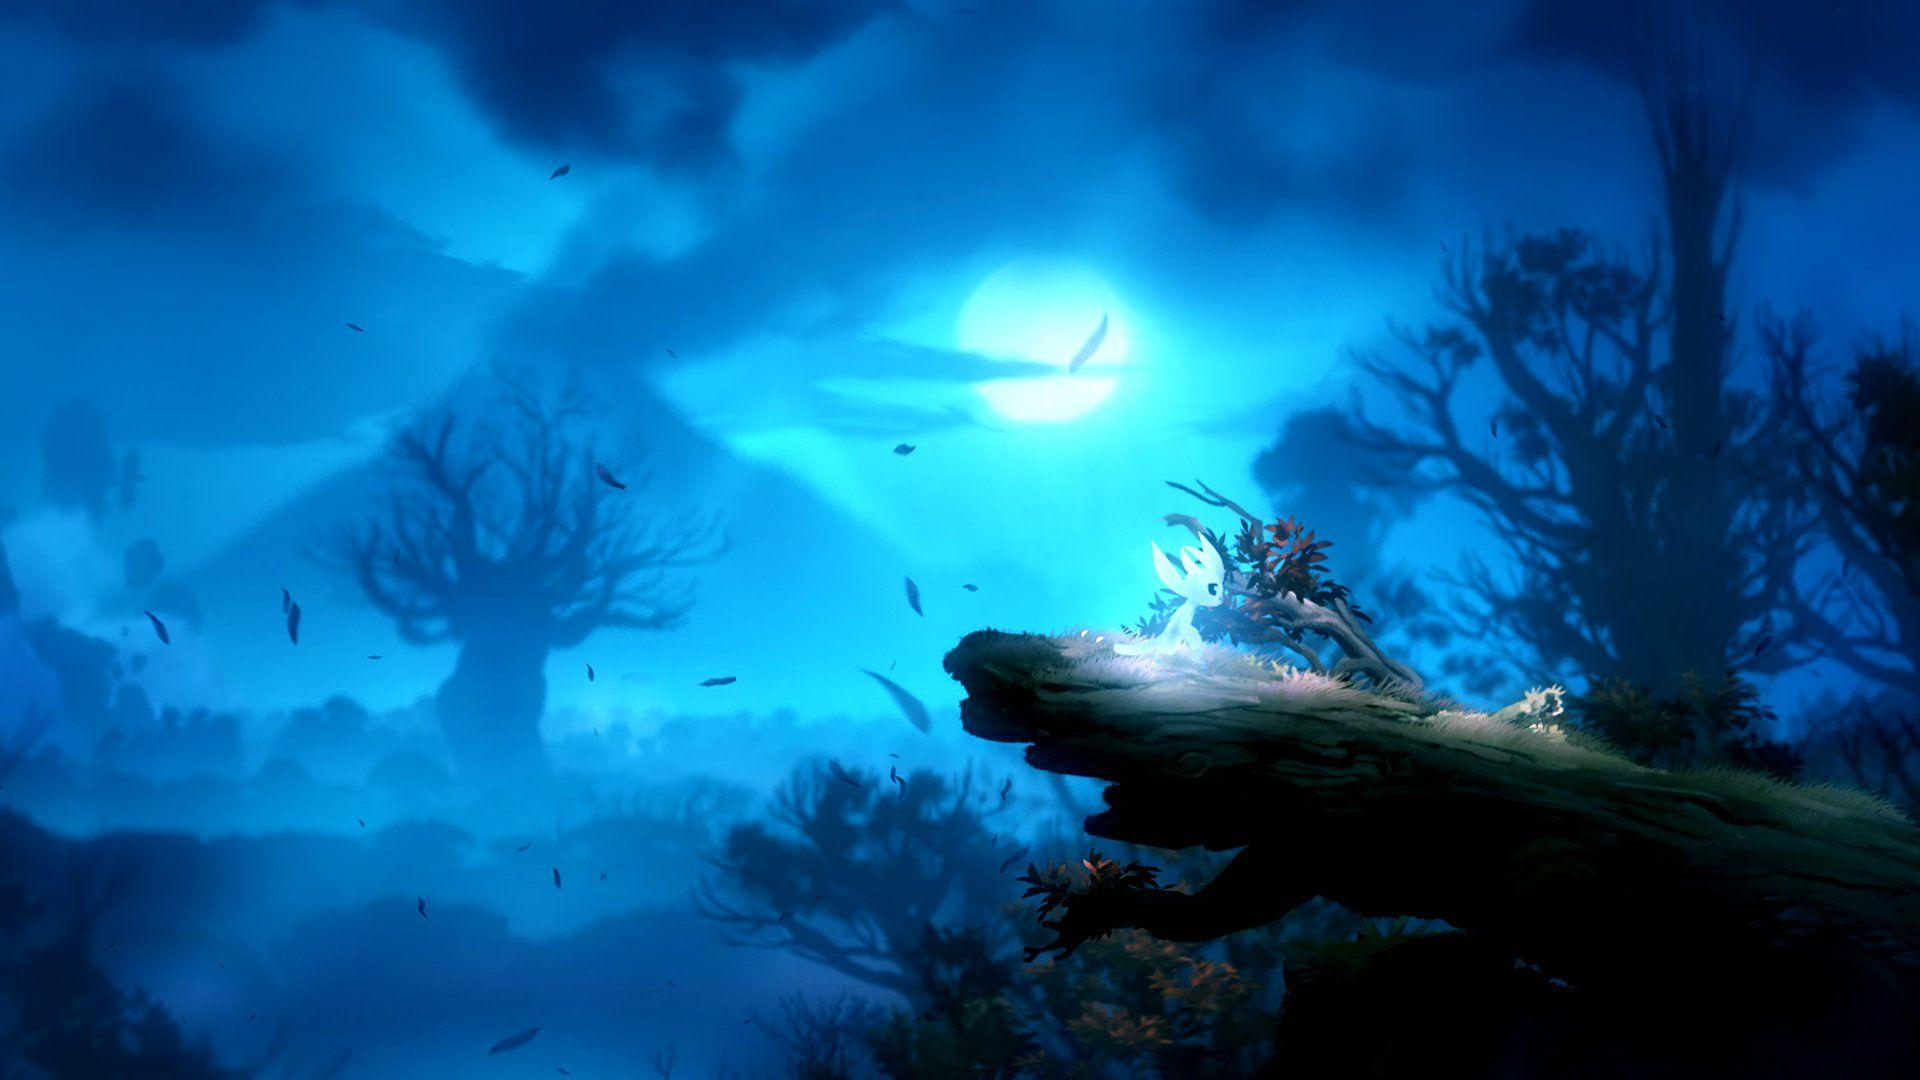 Ori And The Blind Forest Wallpapers